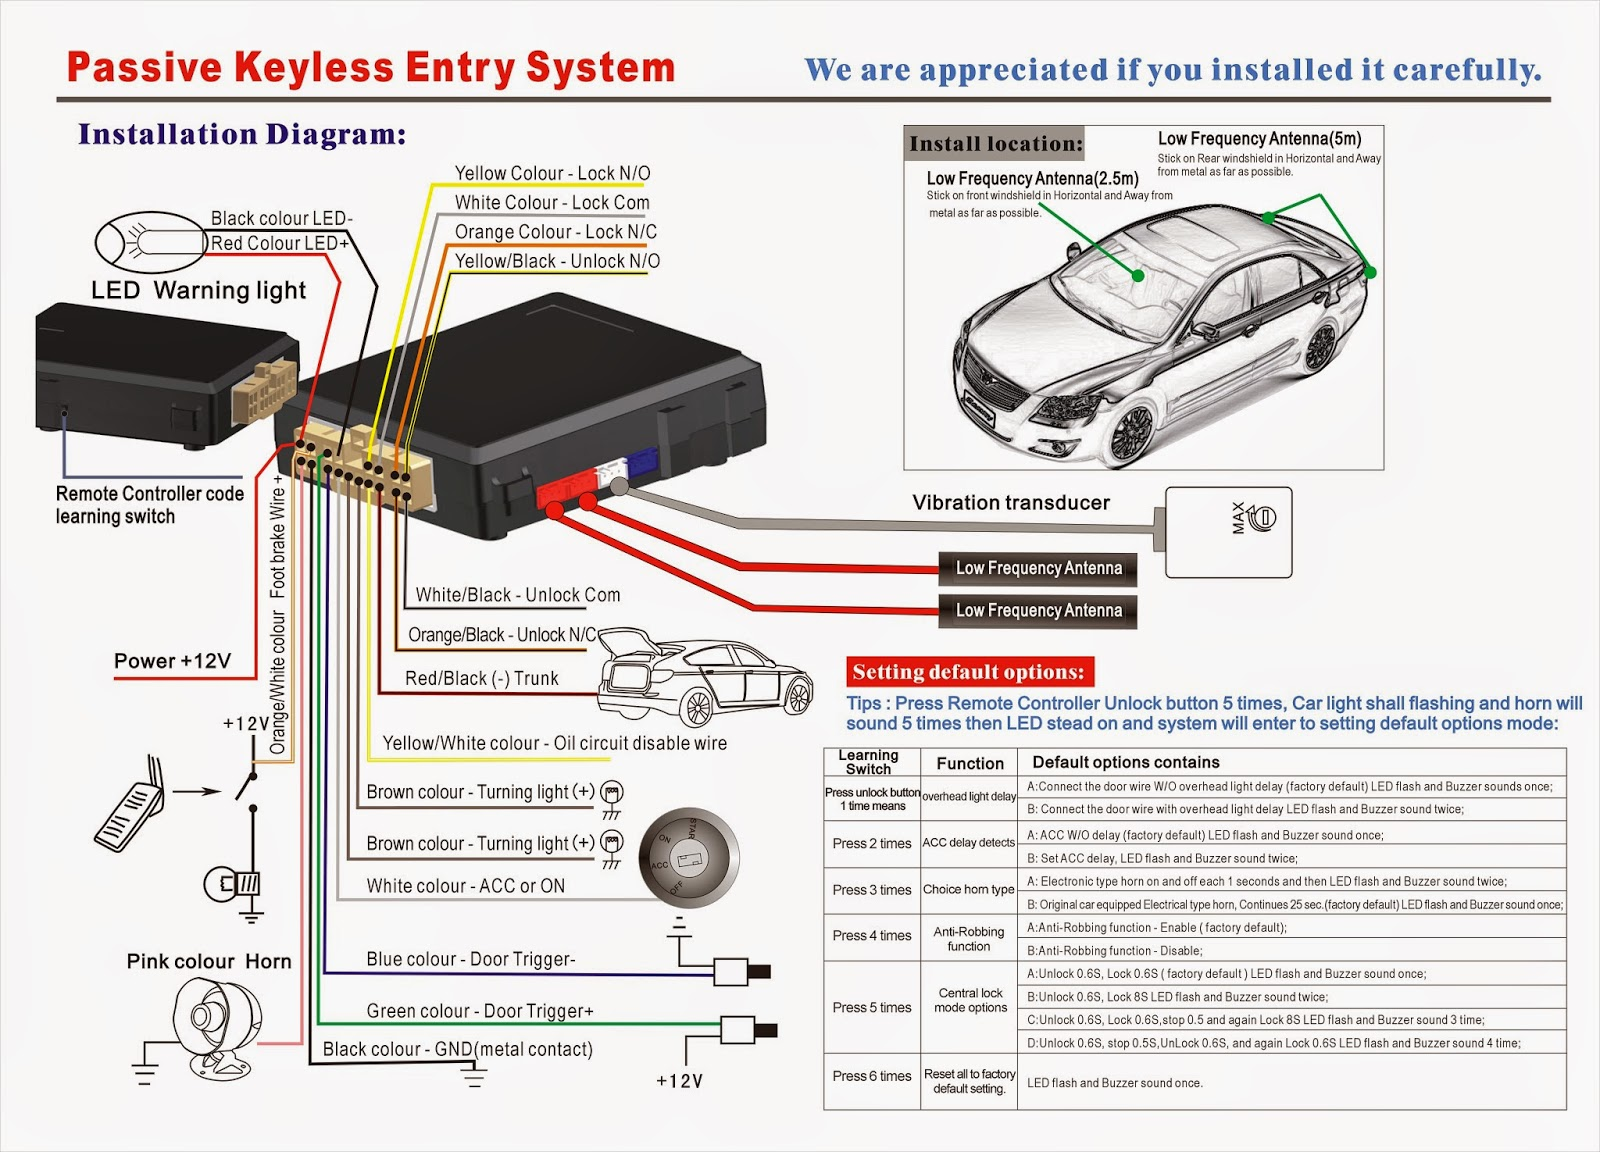 Cool How To Install A Remote Starter Tiny Remote Start Wiring Flat Technical Service Bulletin Lookup Solar System Electrical Diagram Youthful The Solar System Diagram WhiteWiring An Electrical Box Wiring Diagrams Cars For Alarm \u2013 The Wiring Diagram \u2013 Readingrat